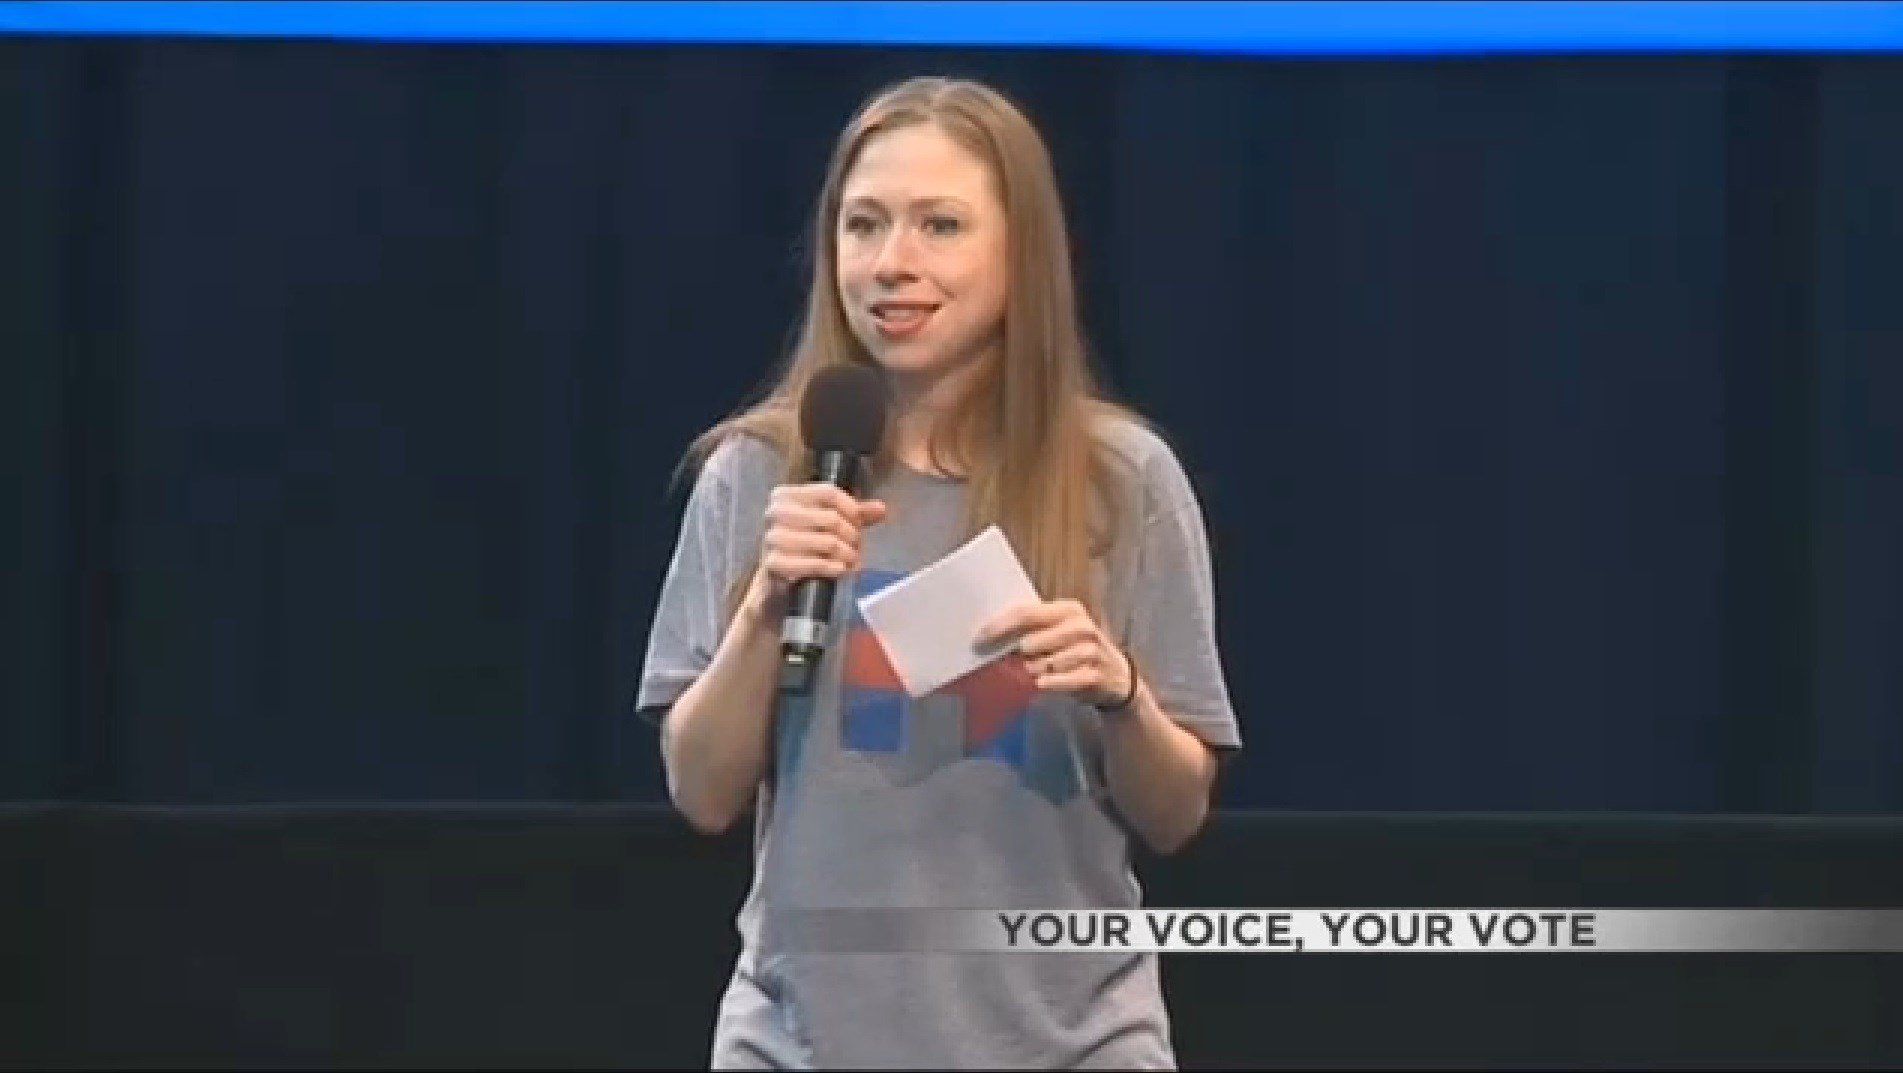 Chelsea Clinton campaigns in Wisconsin